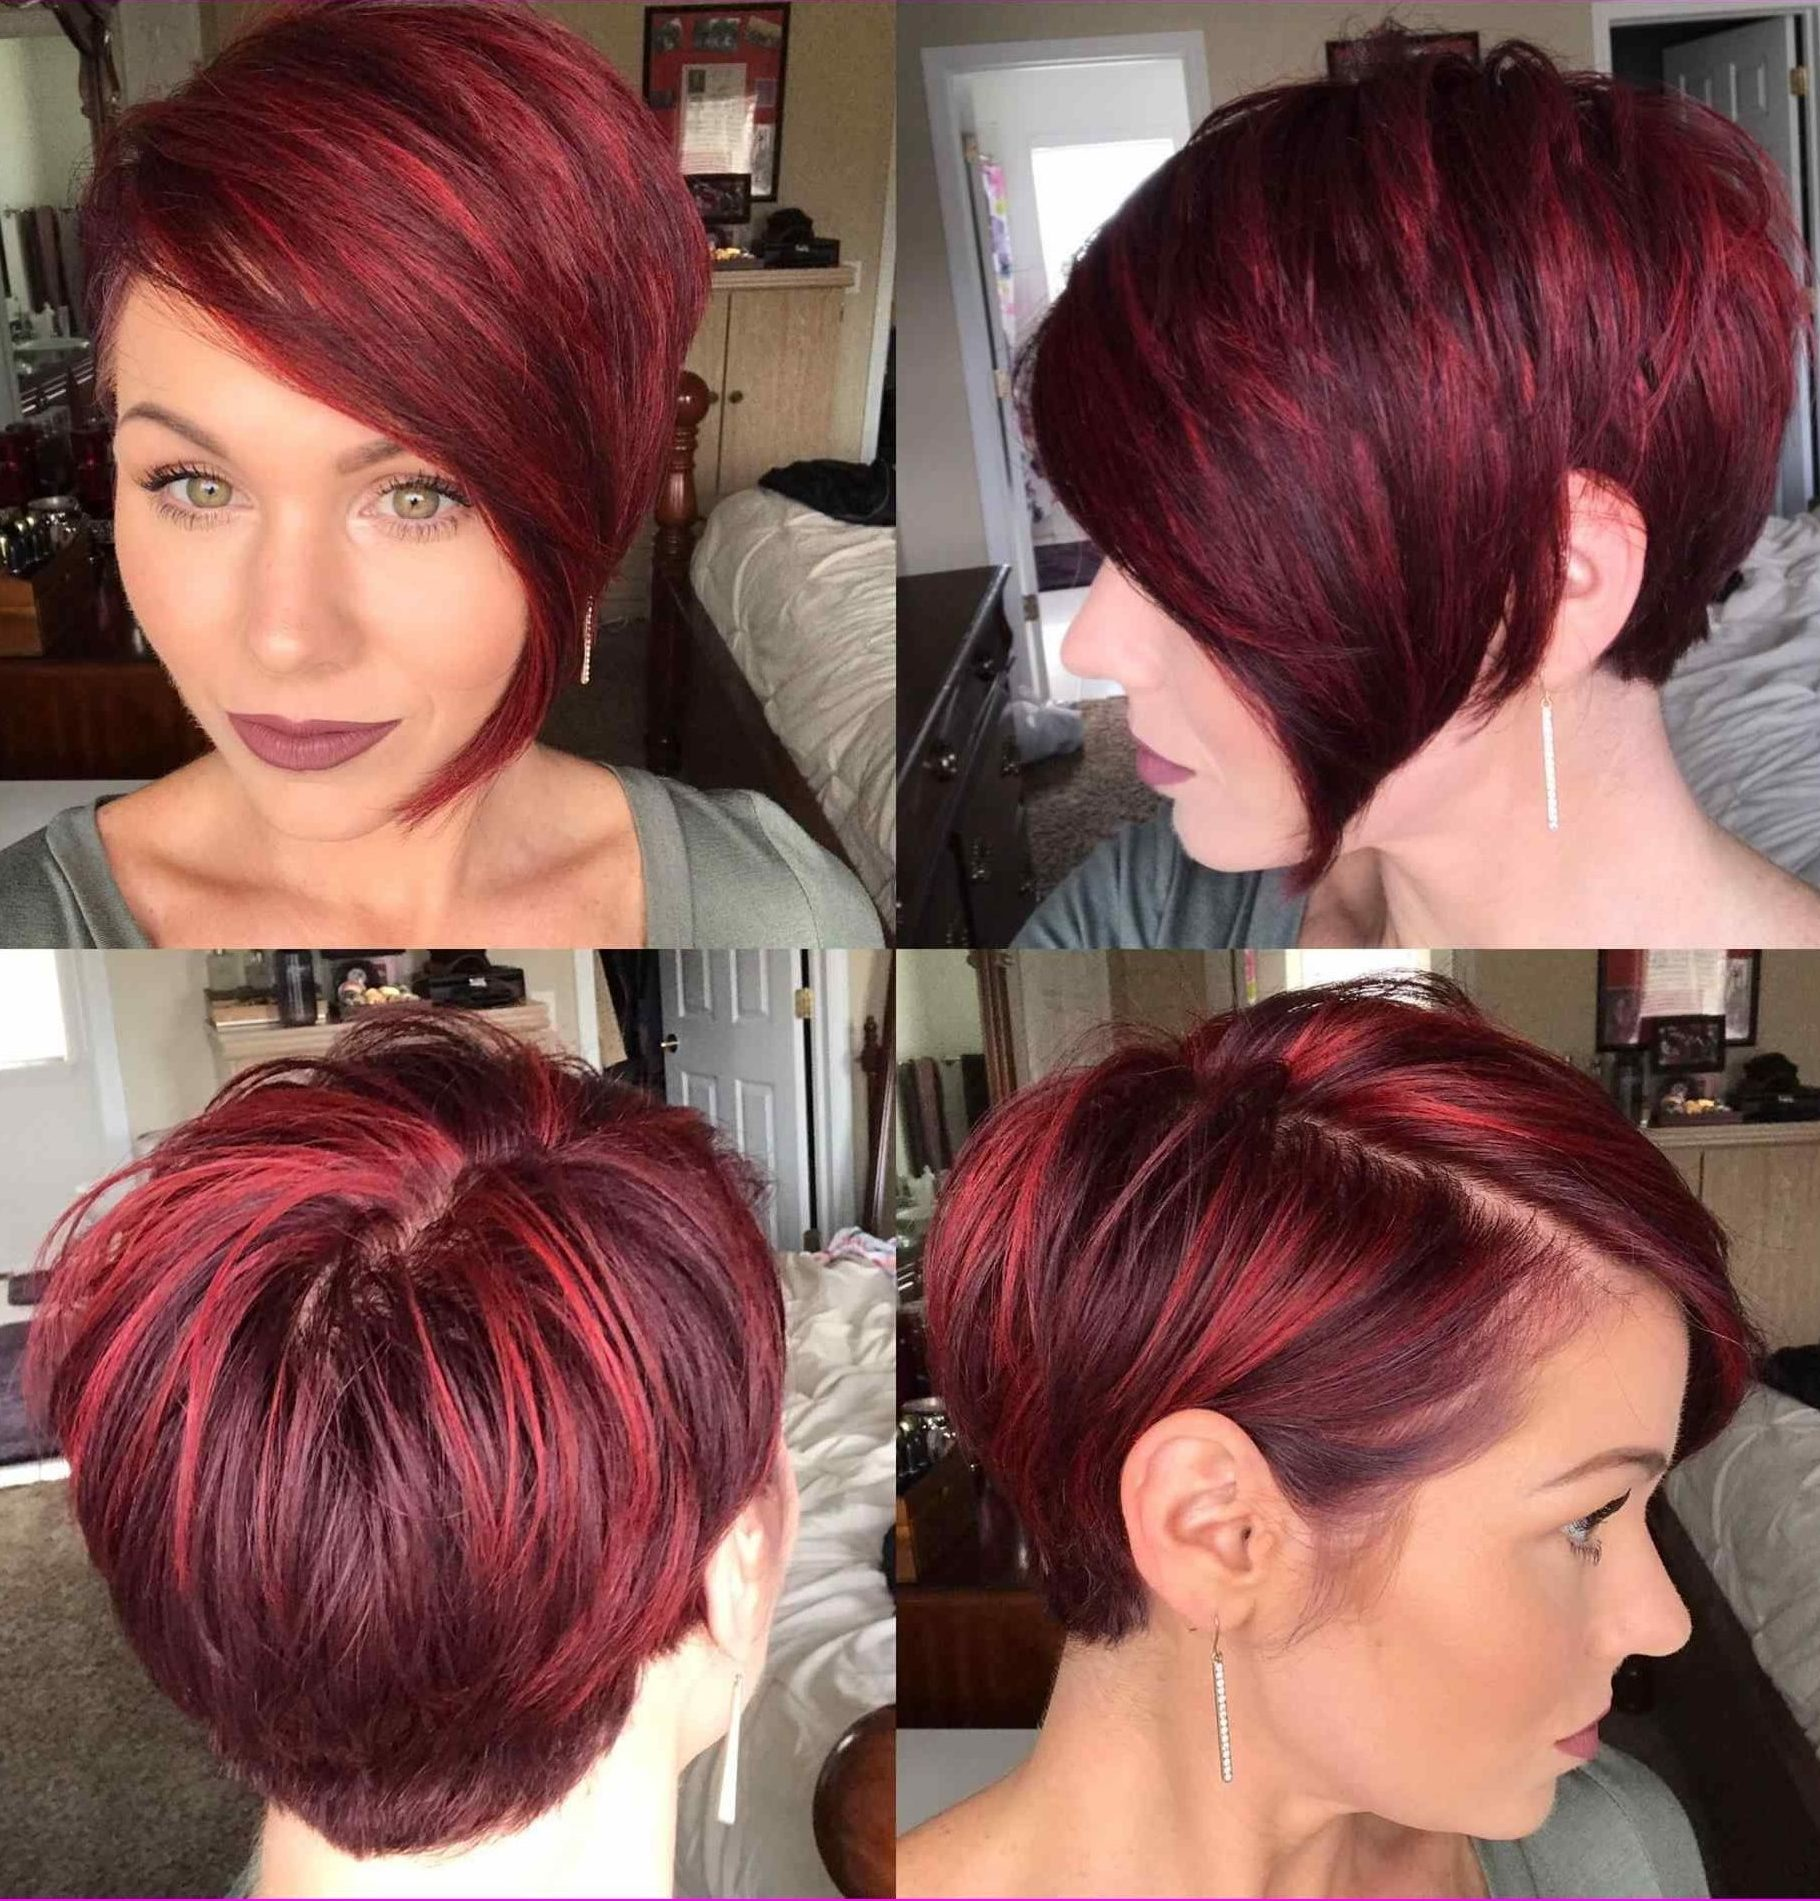 12 Hair Color Ideas for Short Pixie Cuts - Pixie Hair Inspirations